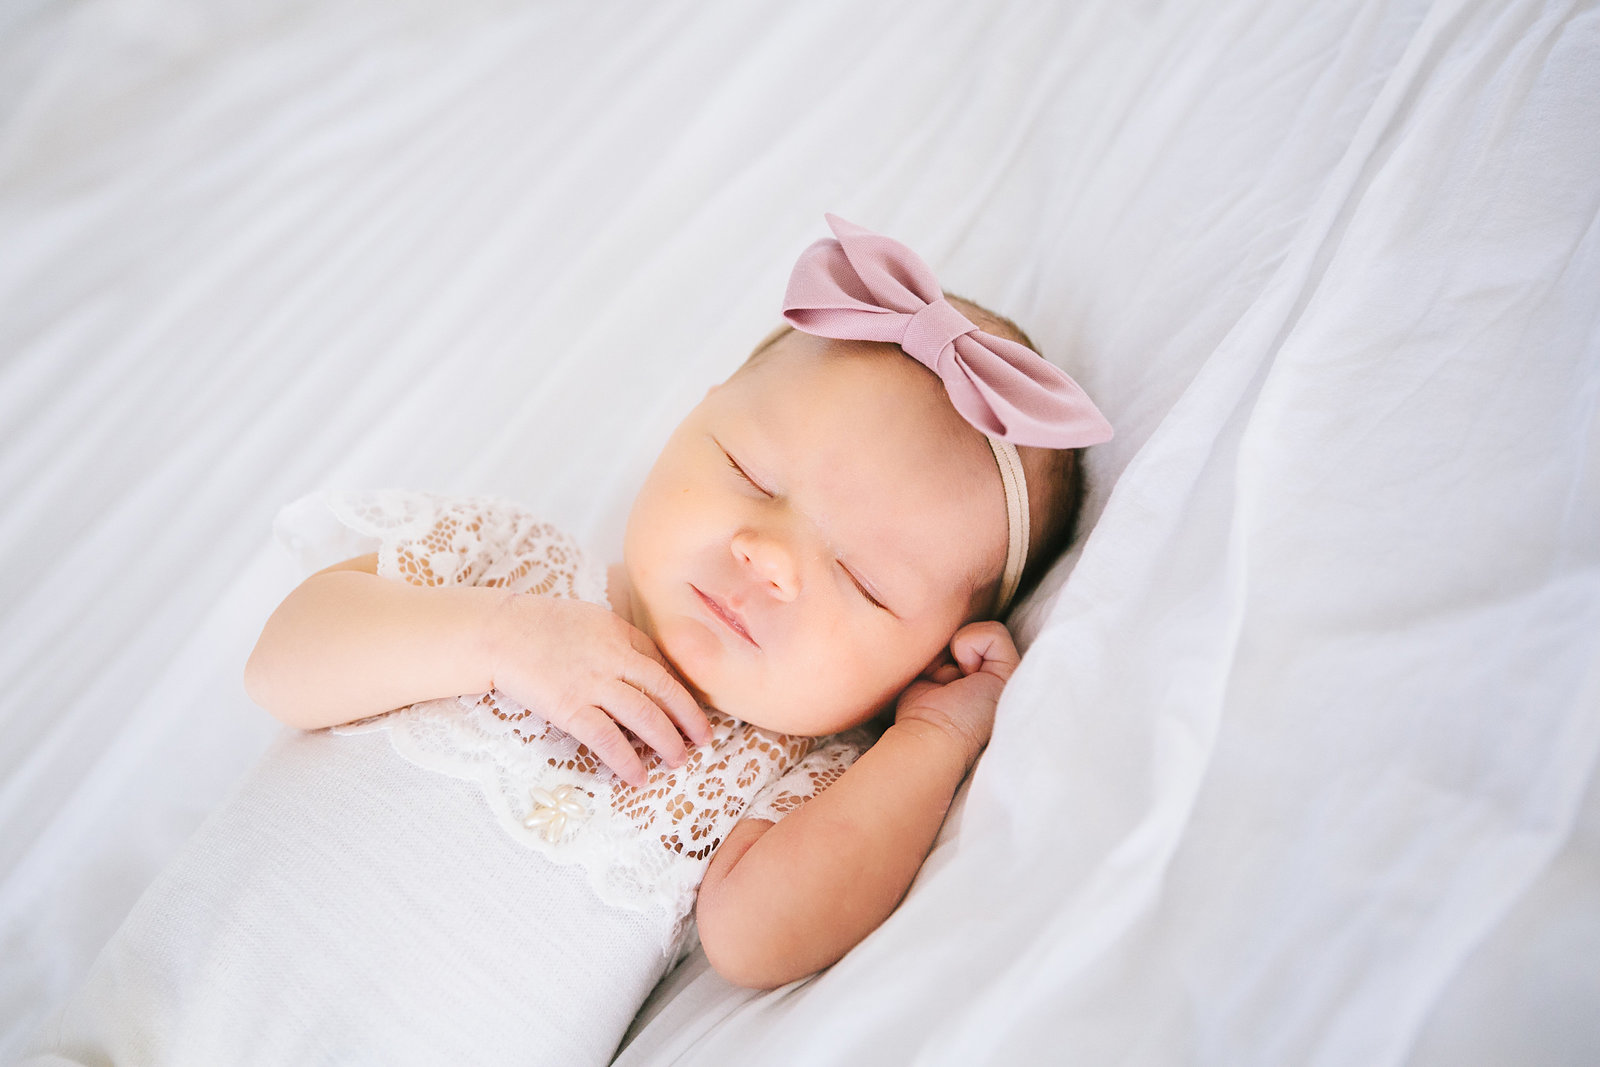 San-Juan-Capistrano-Beach-Newborn-Lifestyle-Photos_08